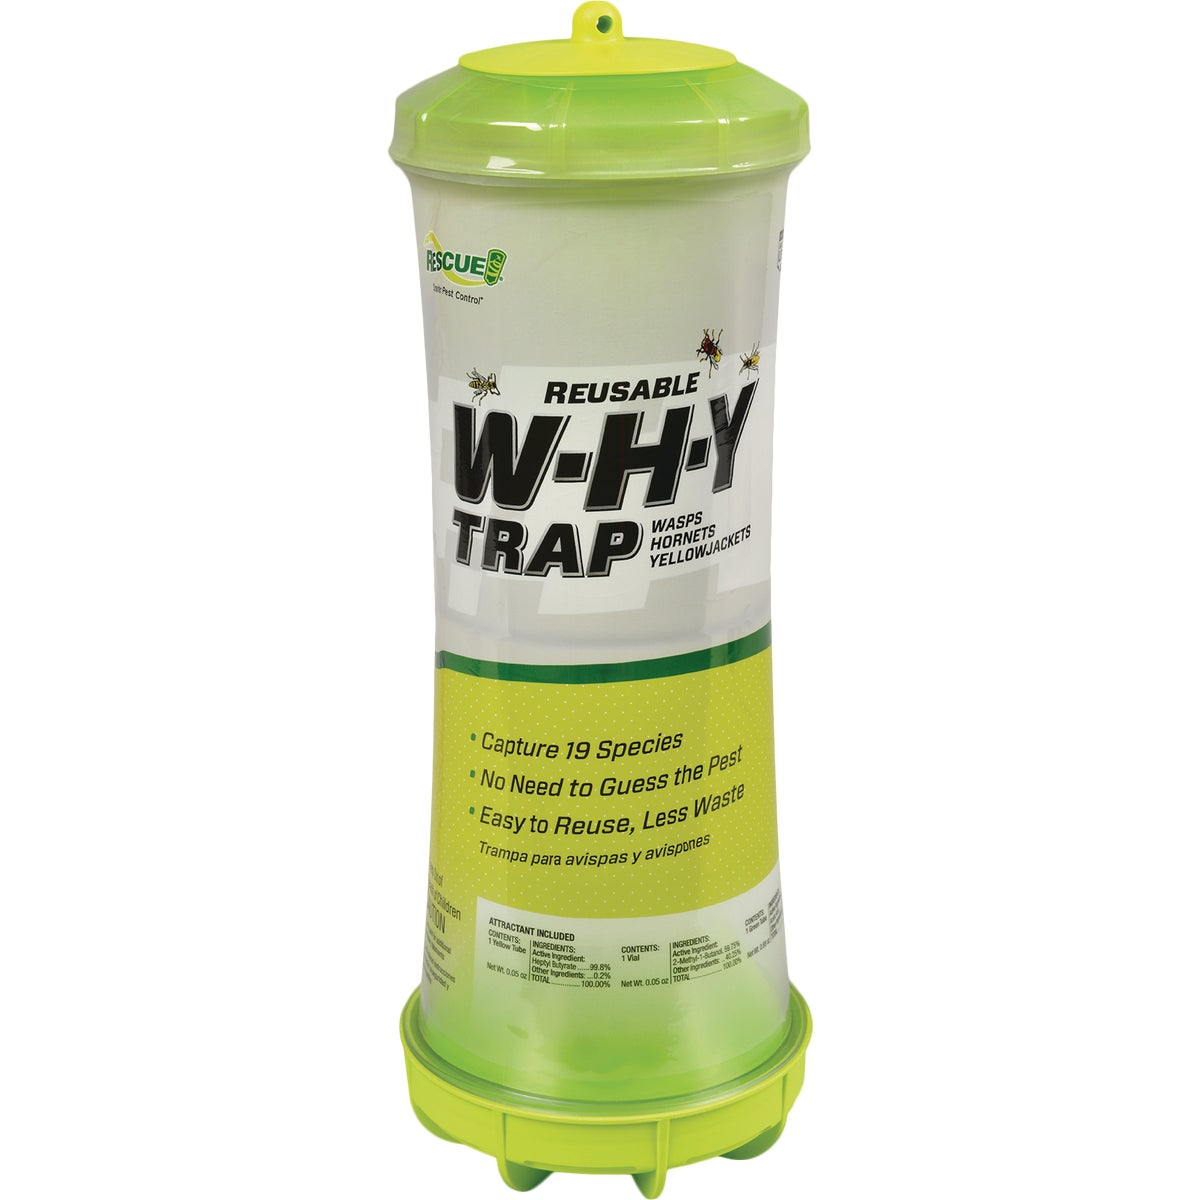 REUSABL WASP HORNET TRAP - WHYTR-BB8 by Sterling Intl